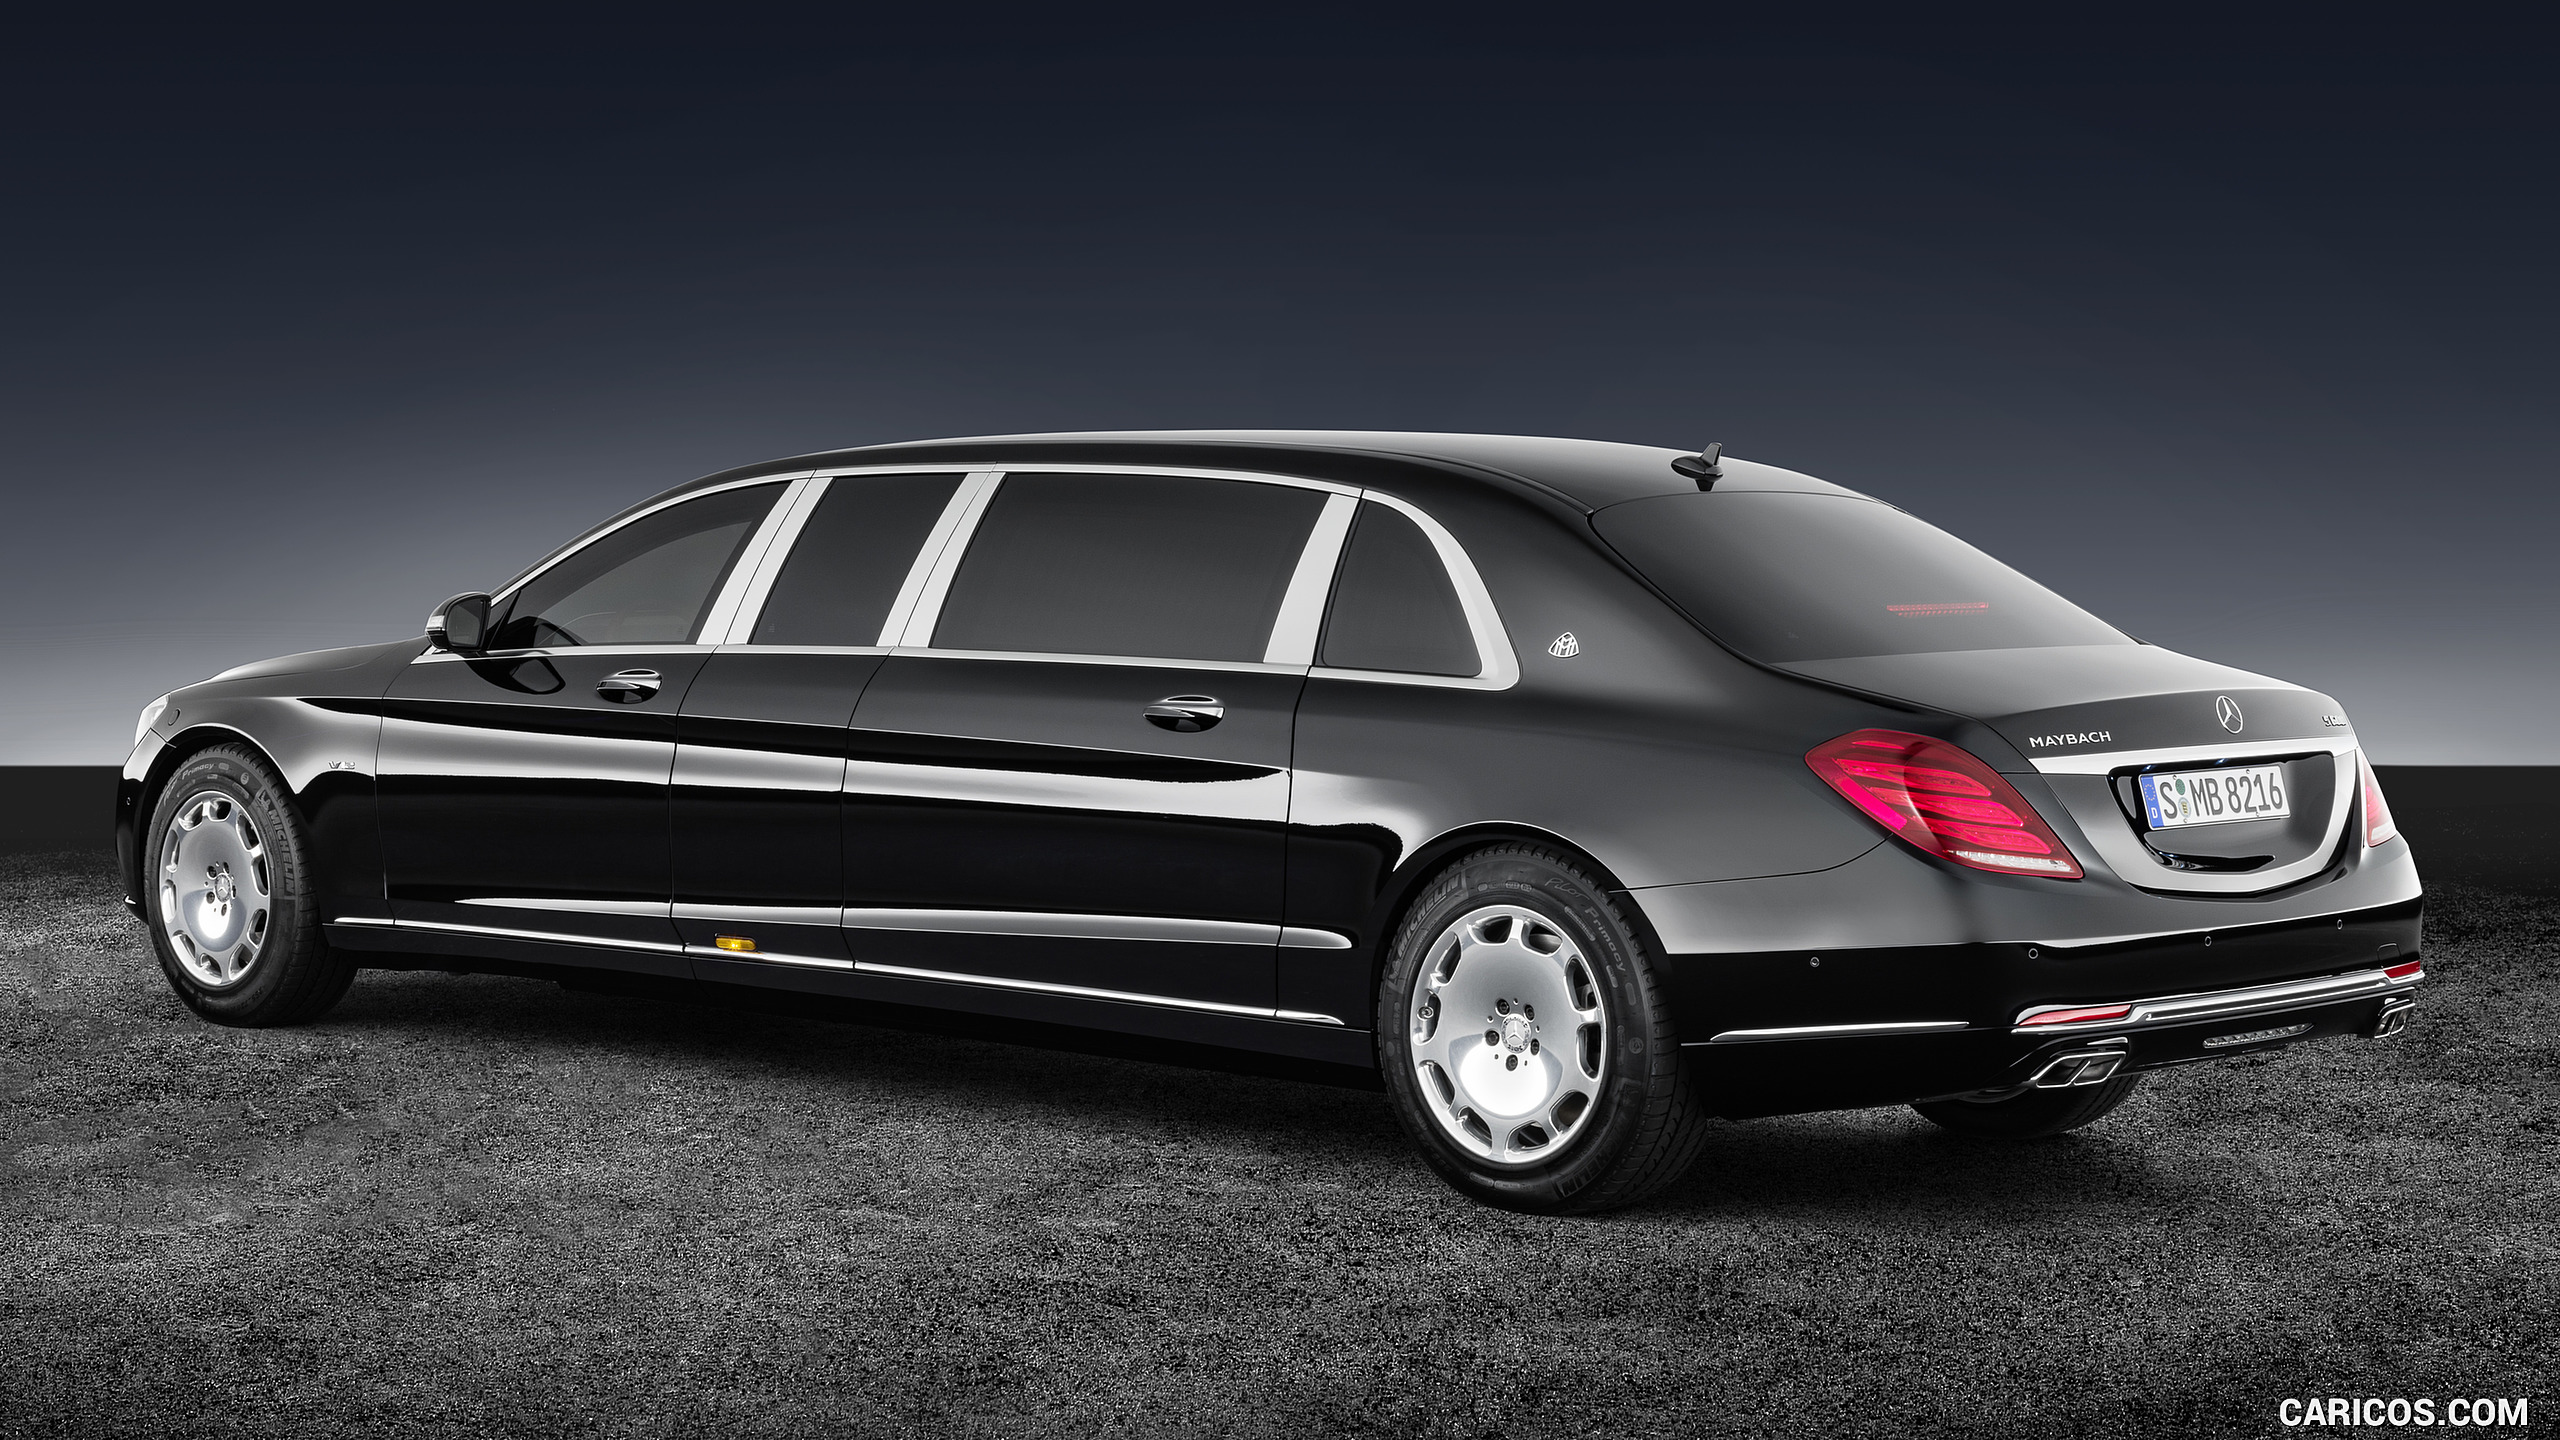 Mercedes-Benz Maybach S-klasse I (X222) 2014 - now Limousine #1